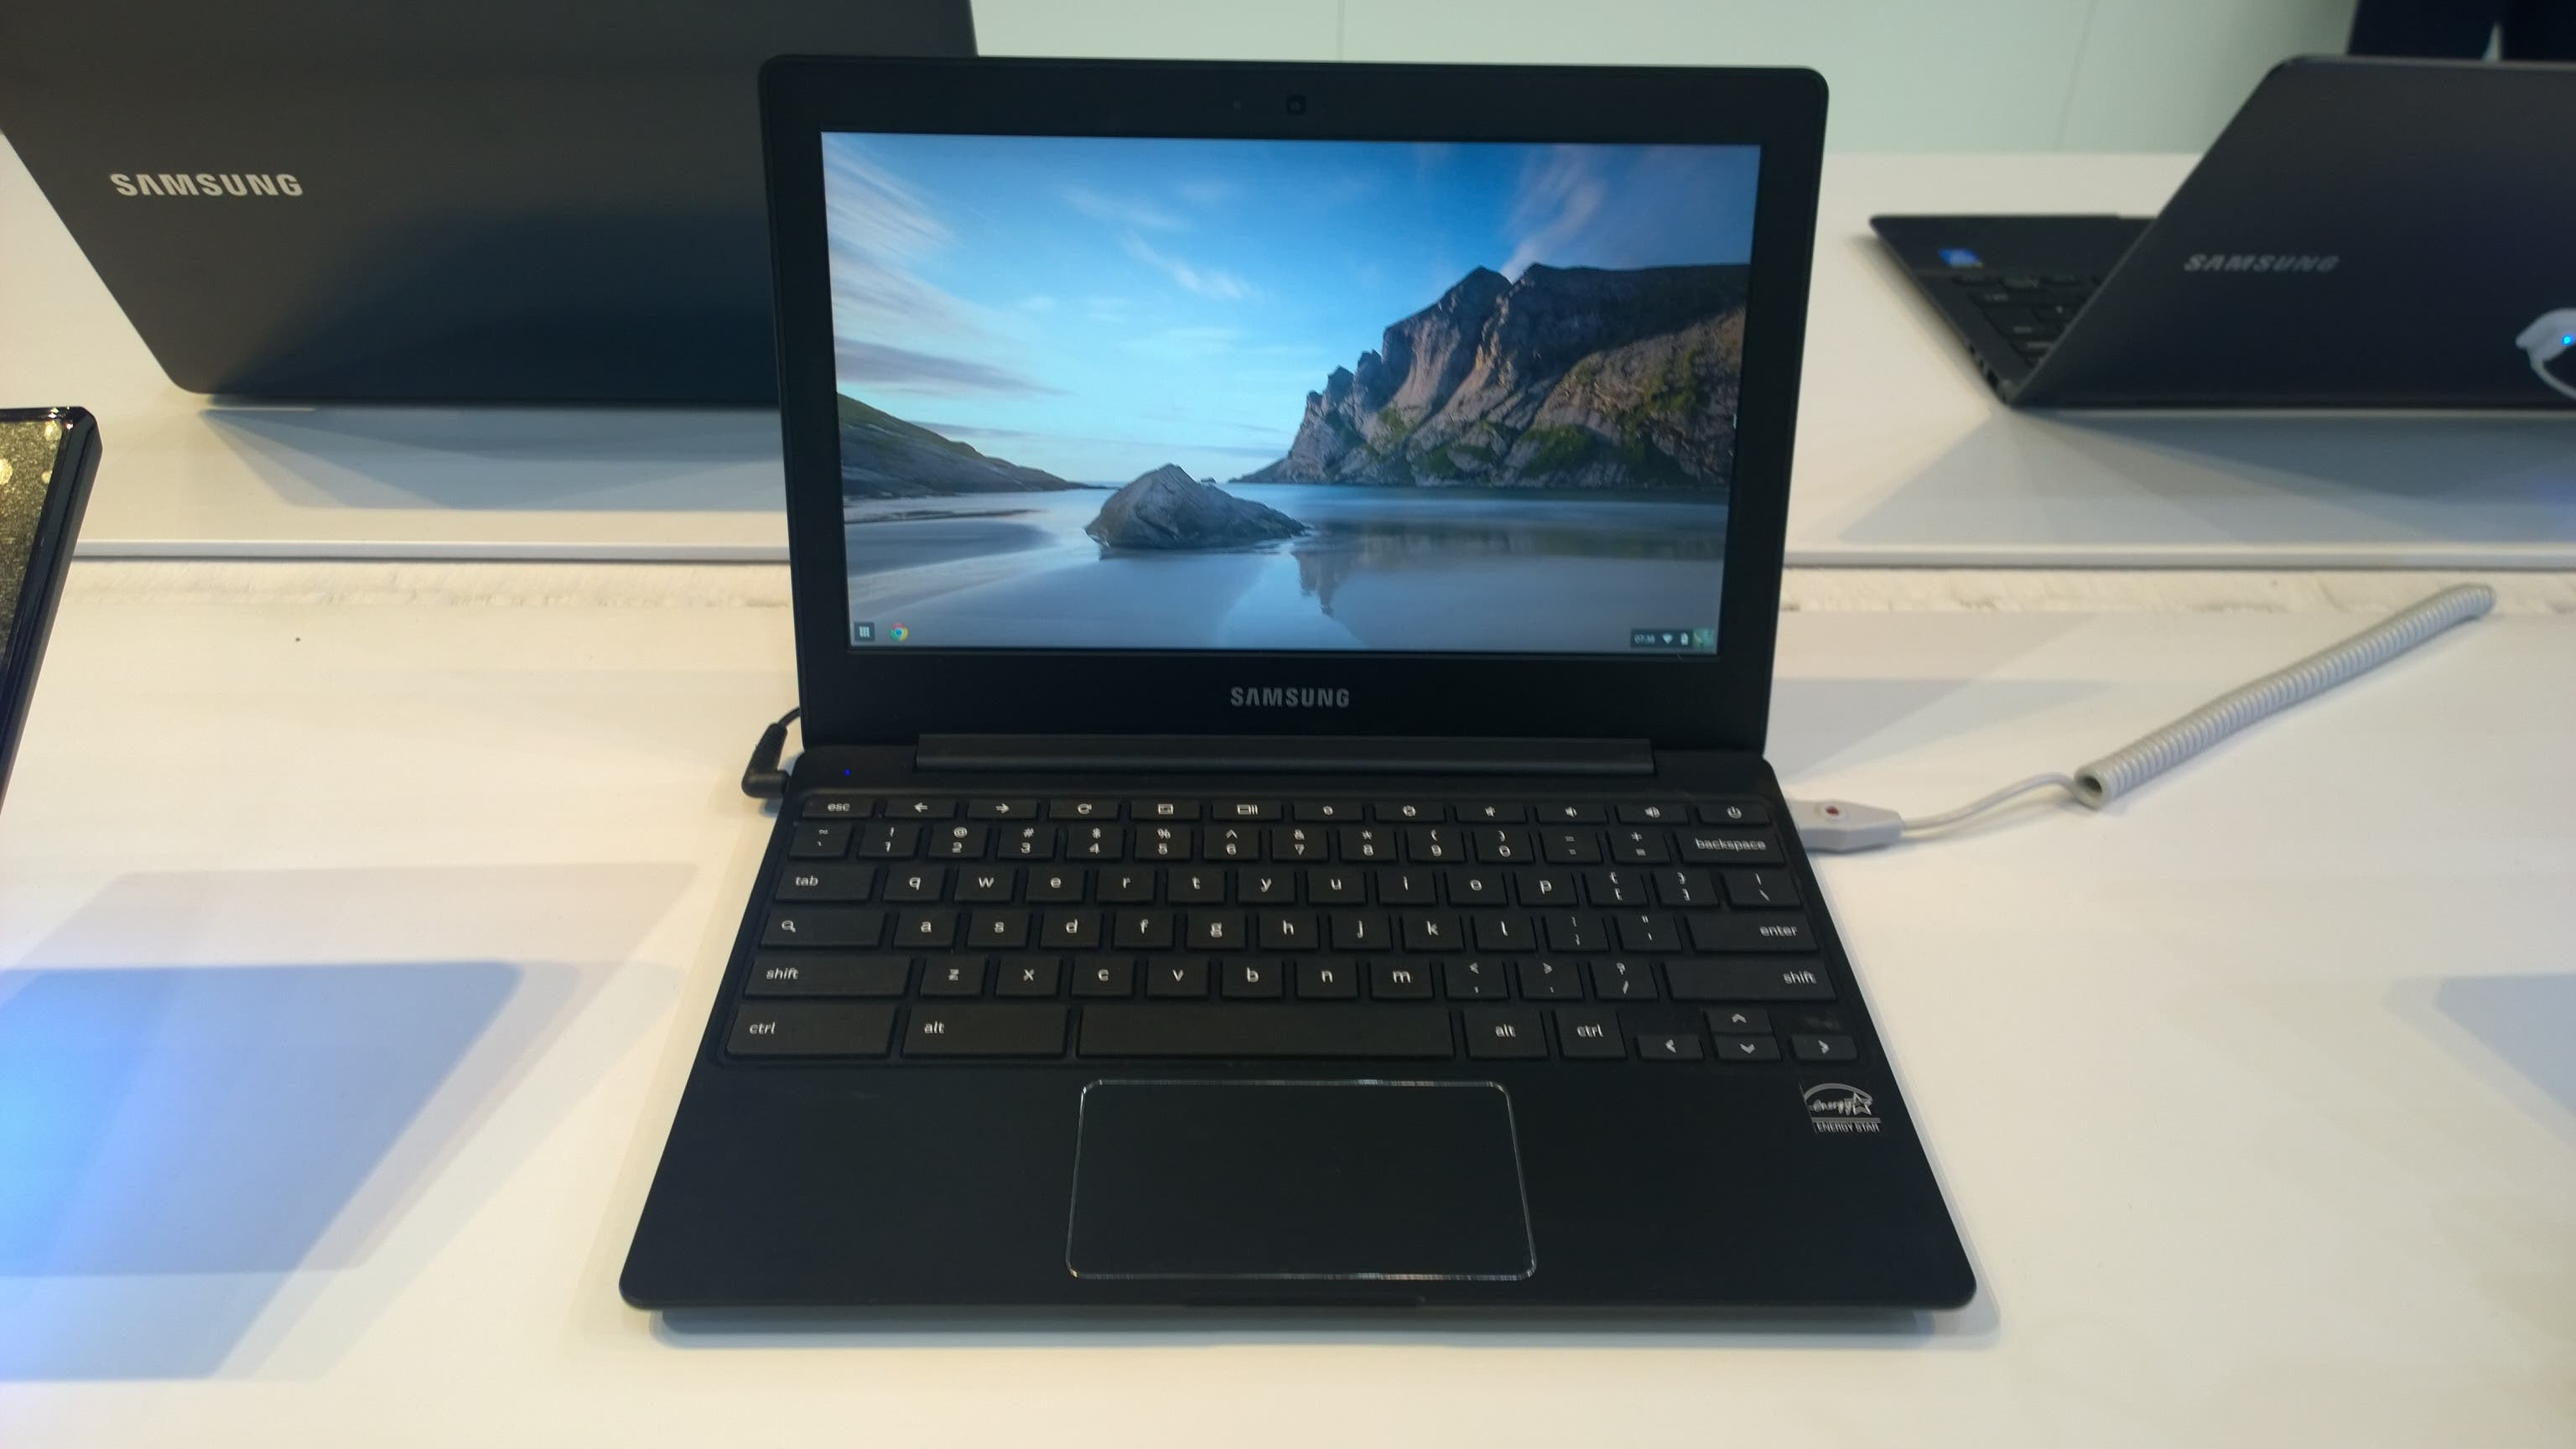 CeBIT 2014 – Samsung Chromebook 2 11.6-inch im Hands On [Video]